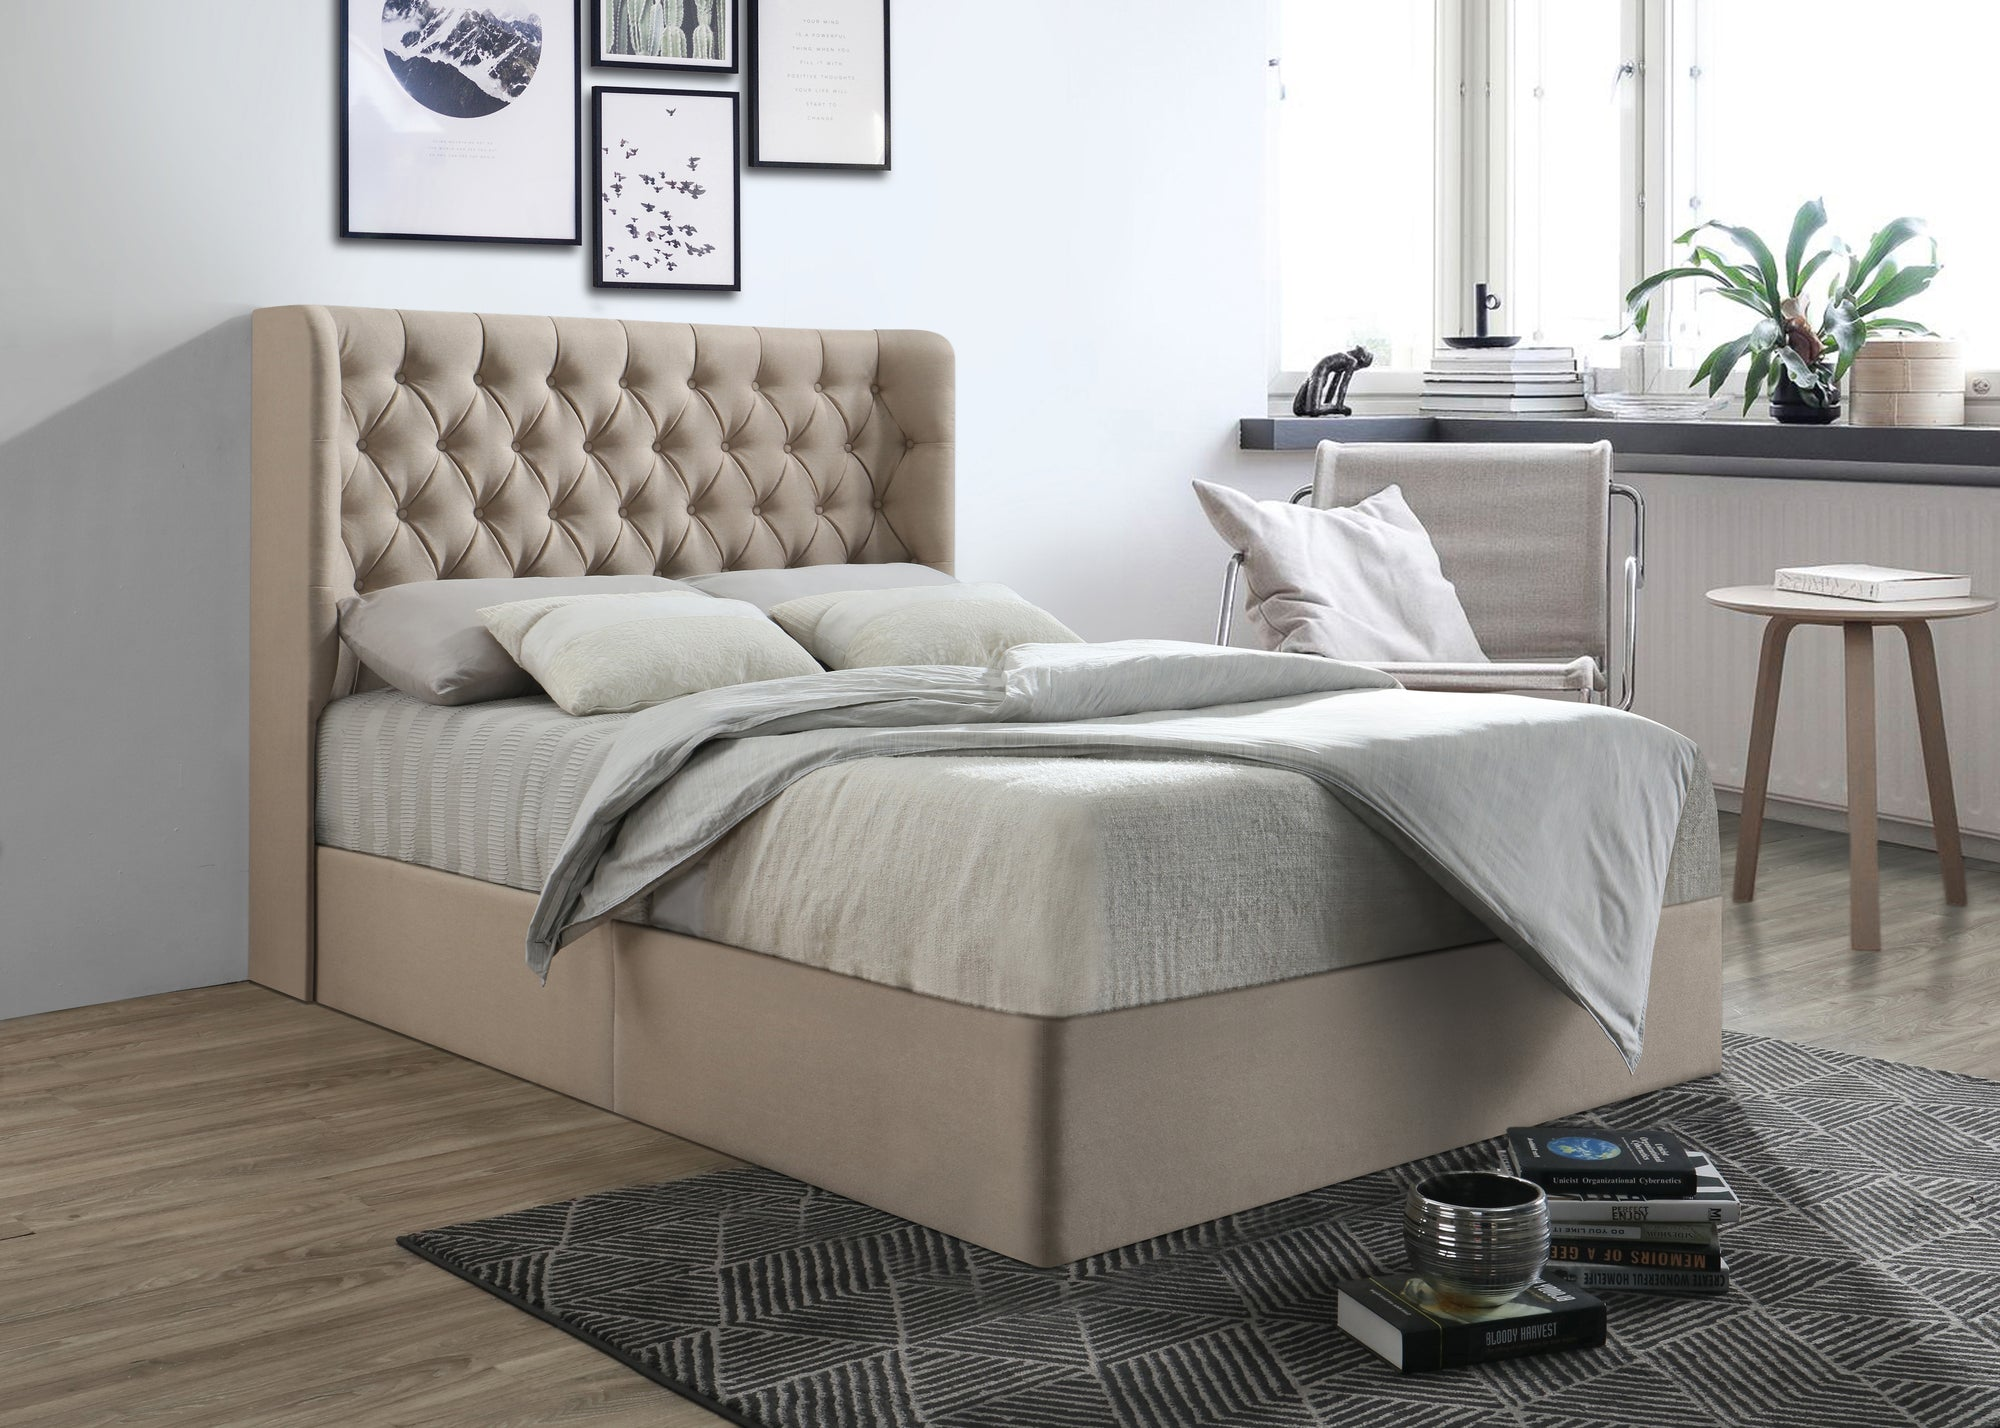 b8e38beb5783 Duke Chesterfield Wing Bespoke Divan Storage Bed-Bed-Chic Concept